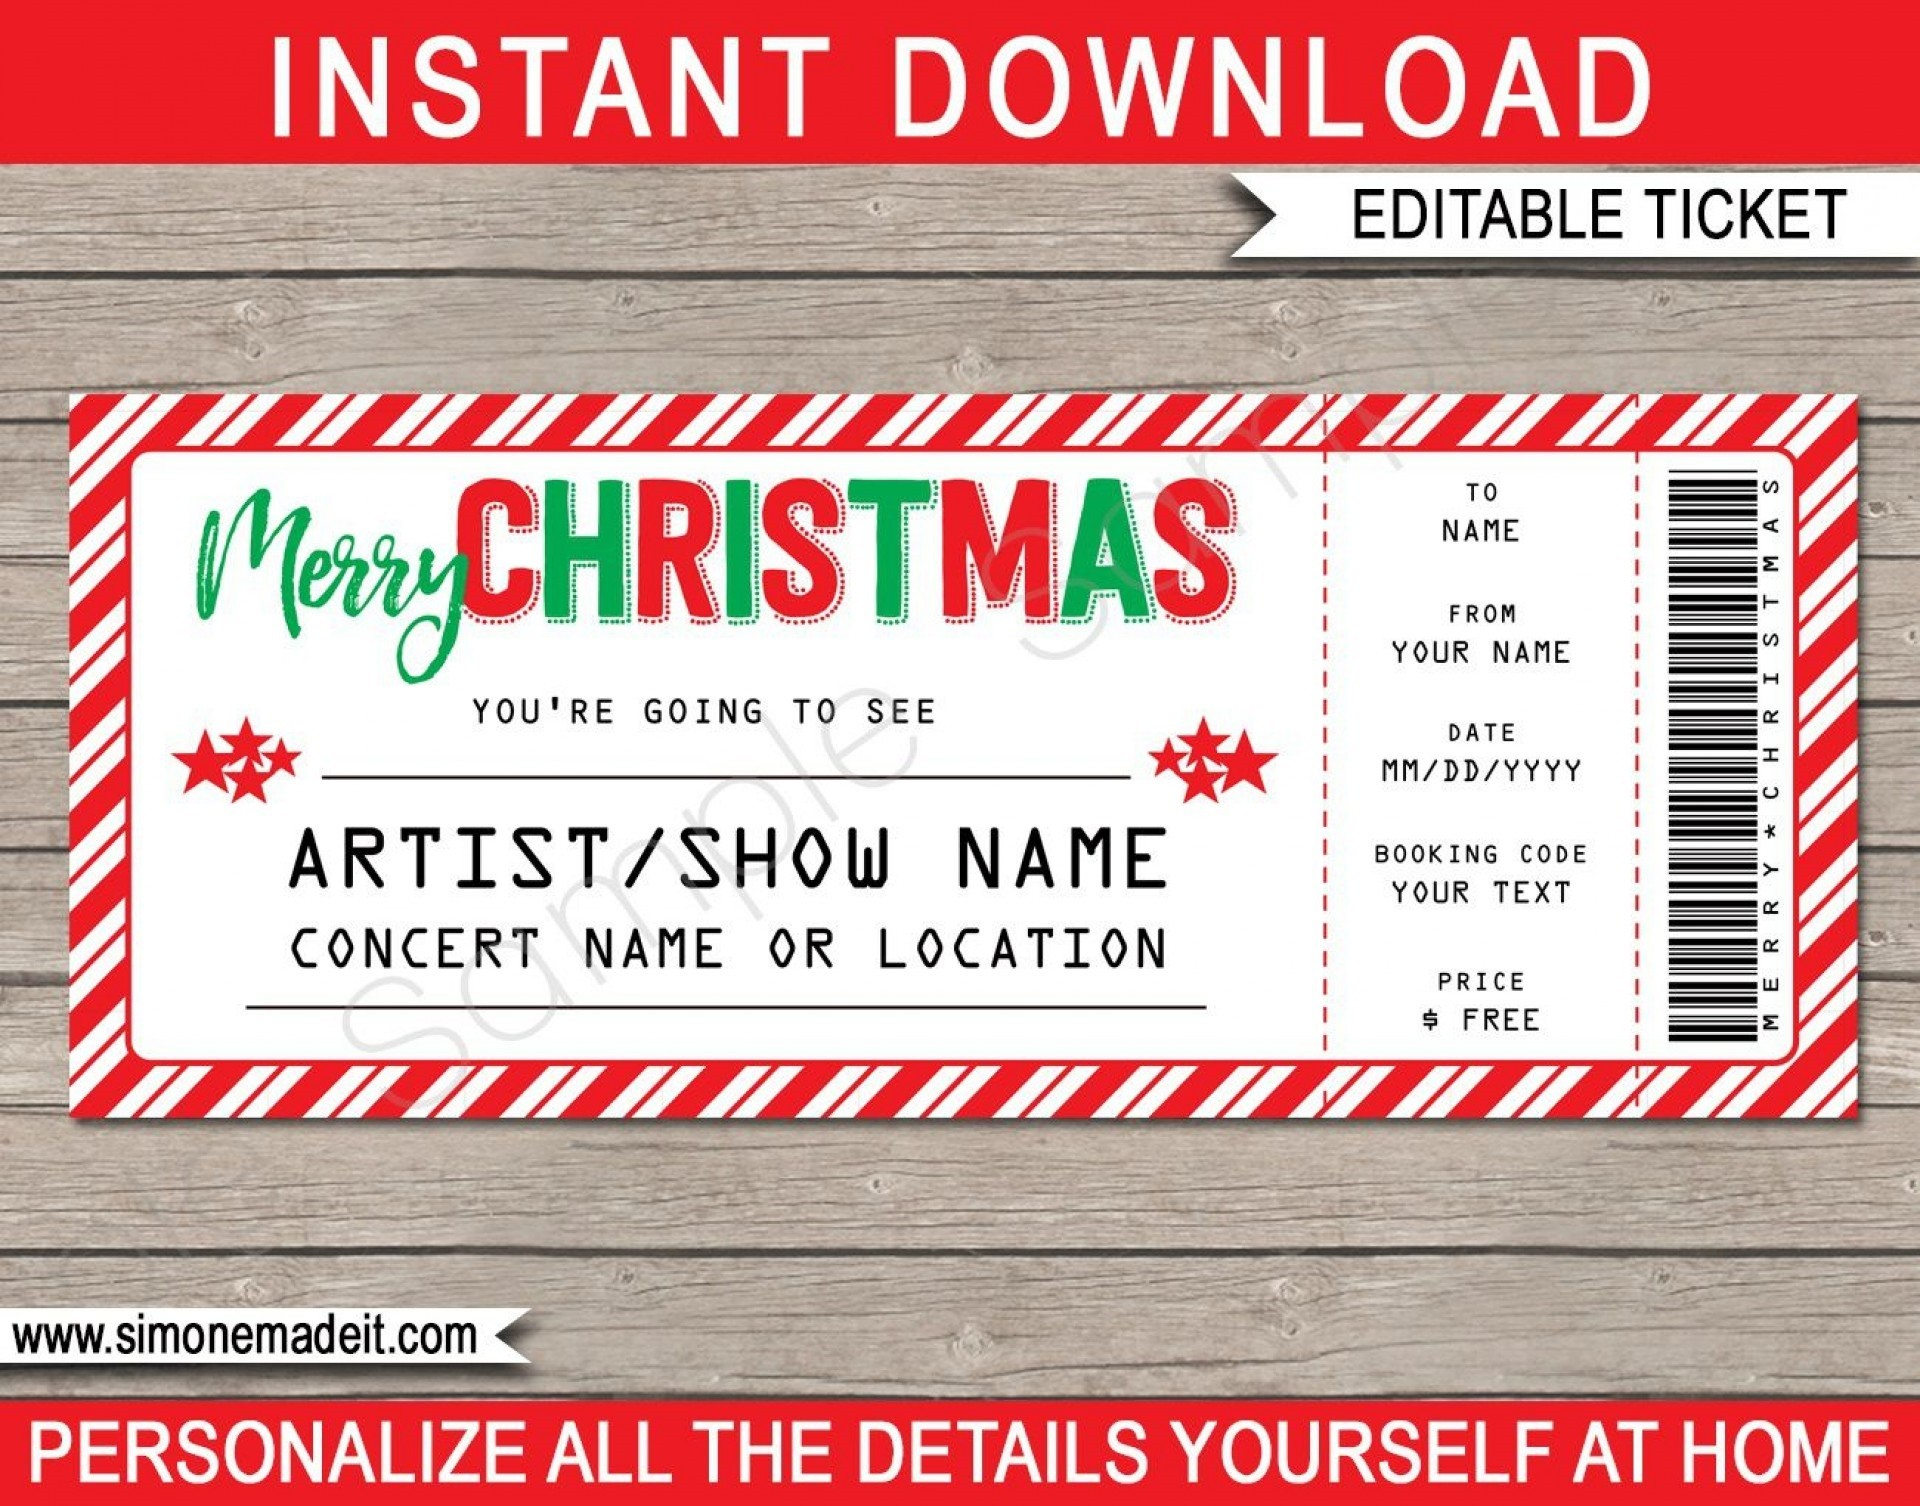 006 Simple Free Editable Concert Ticket Template Image  Psd Word1920